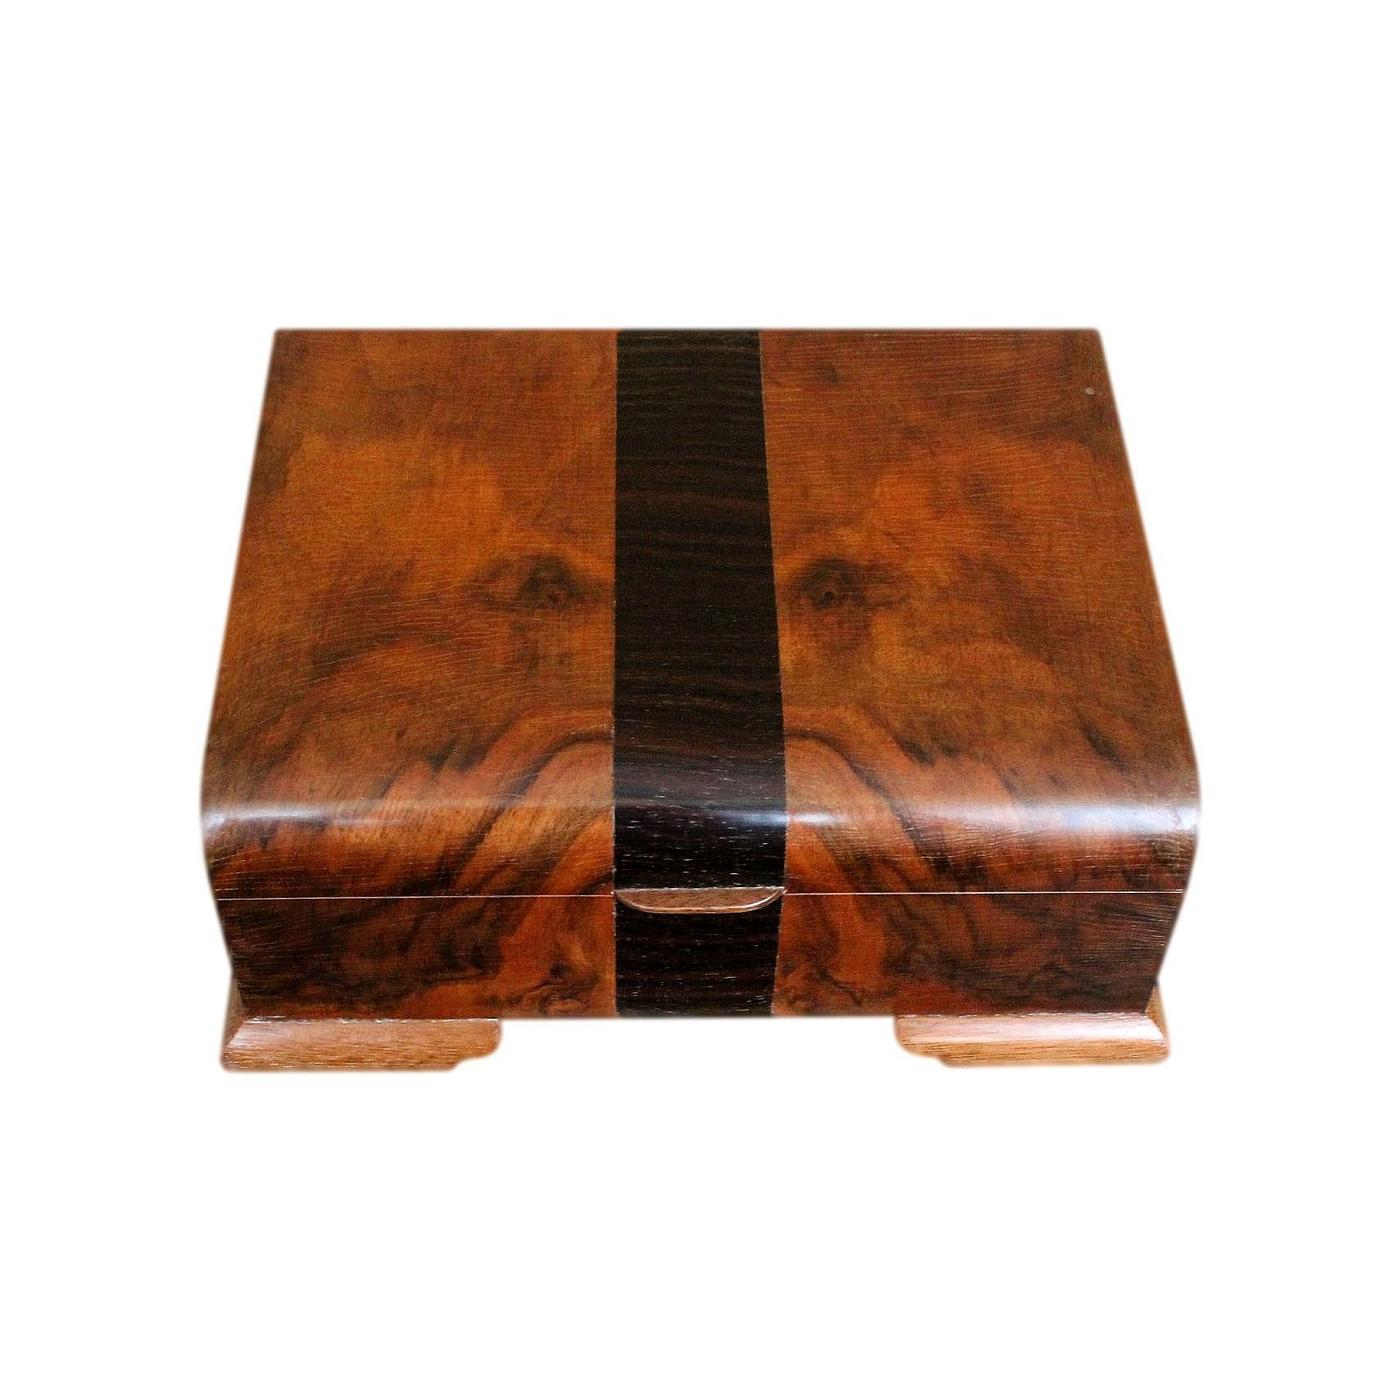 Refurbished Mahogany Art Deco Jewellery Box With Beautiful Veneers